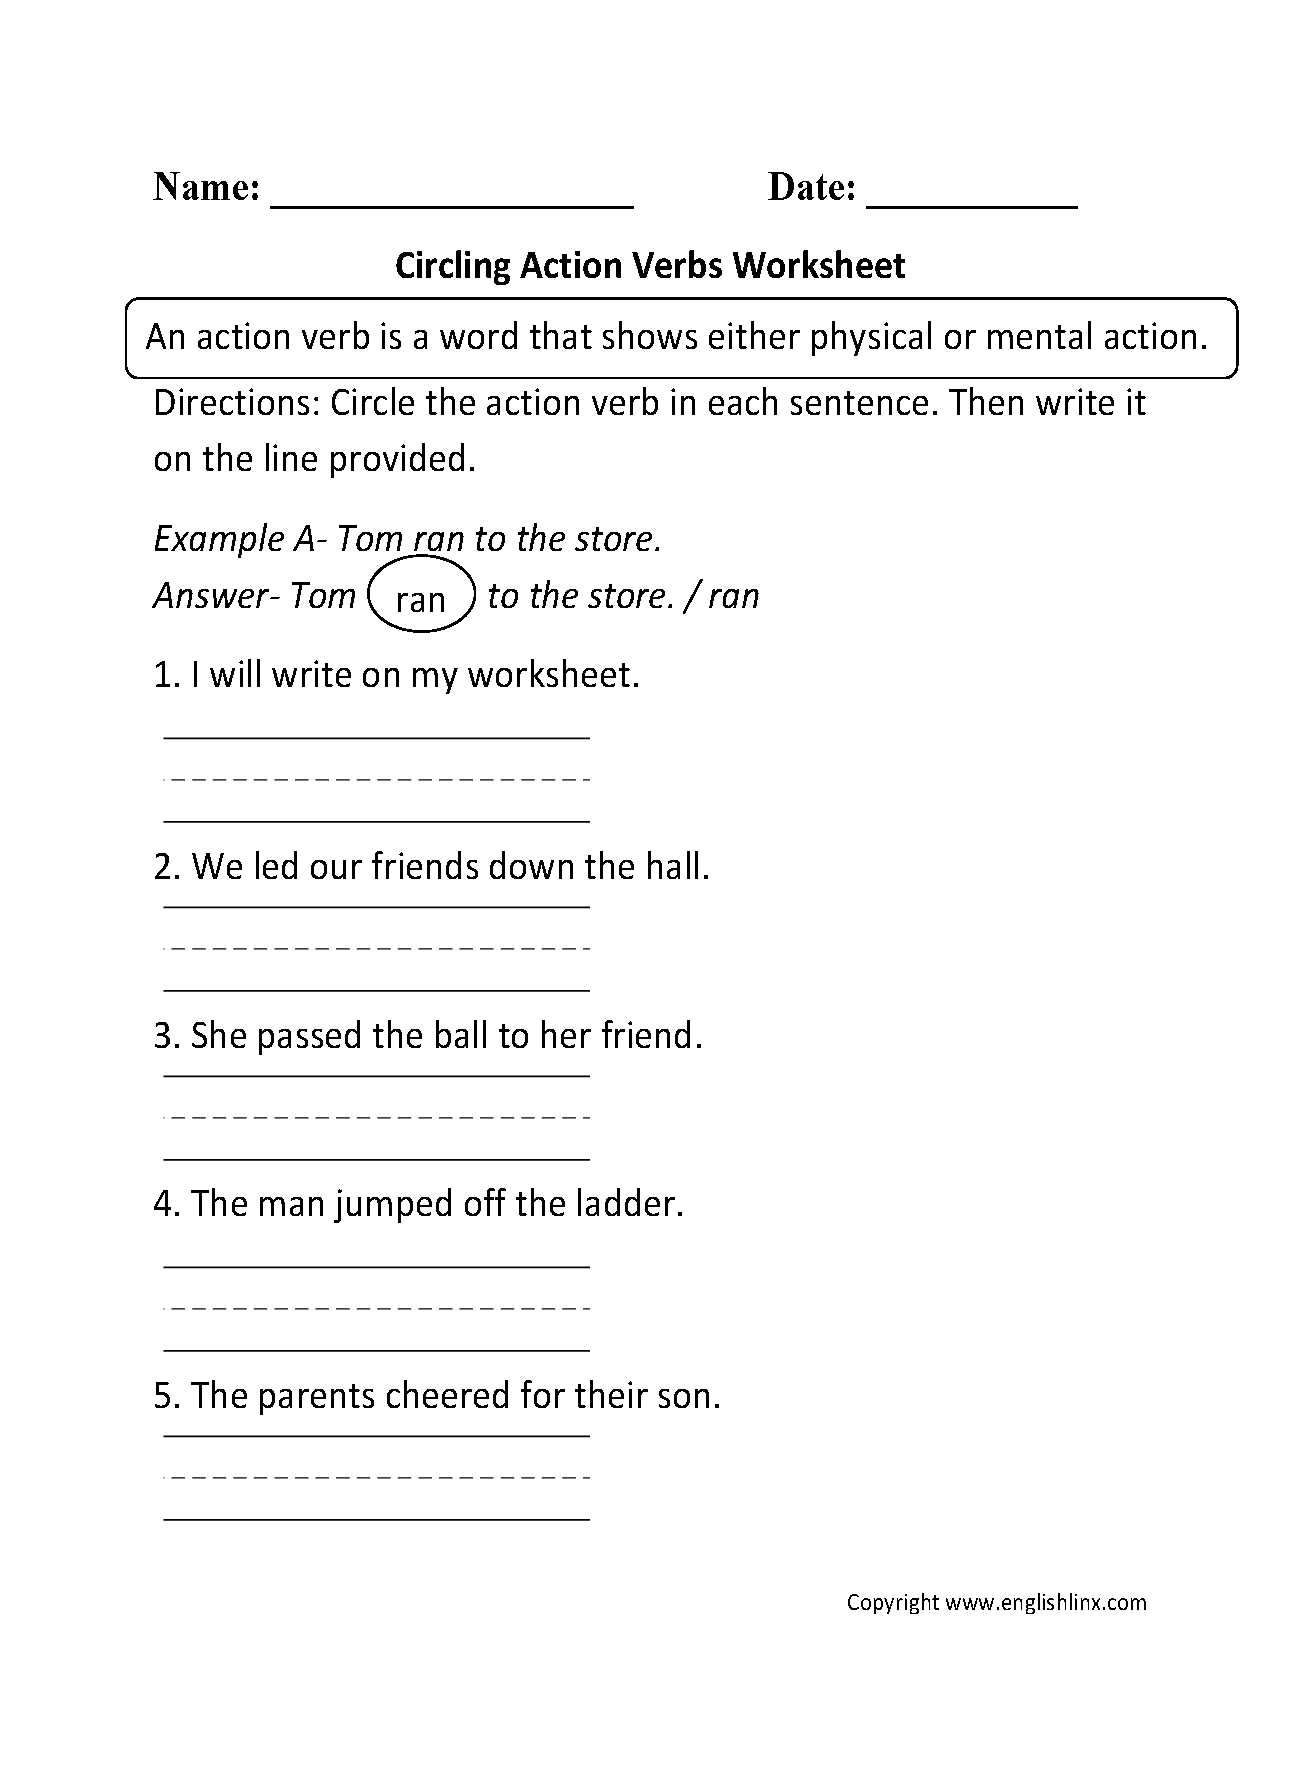 Circling Action Verbs Worksheet